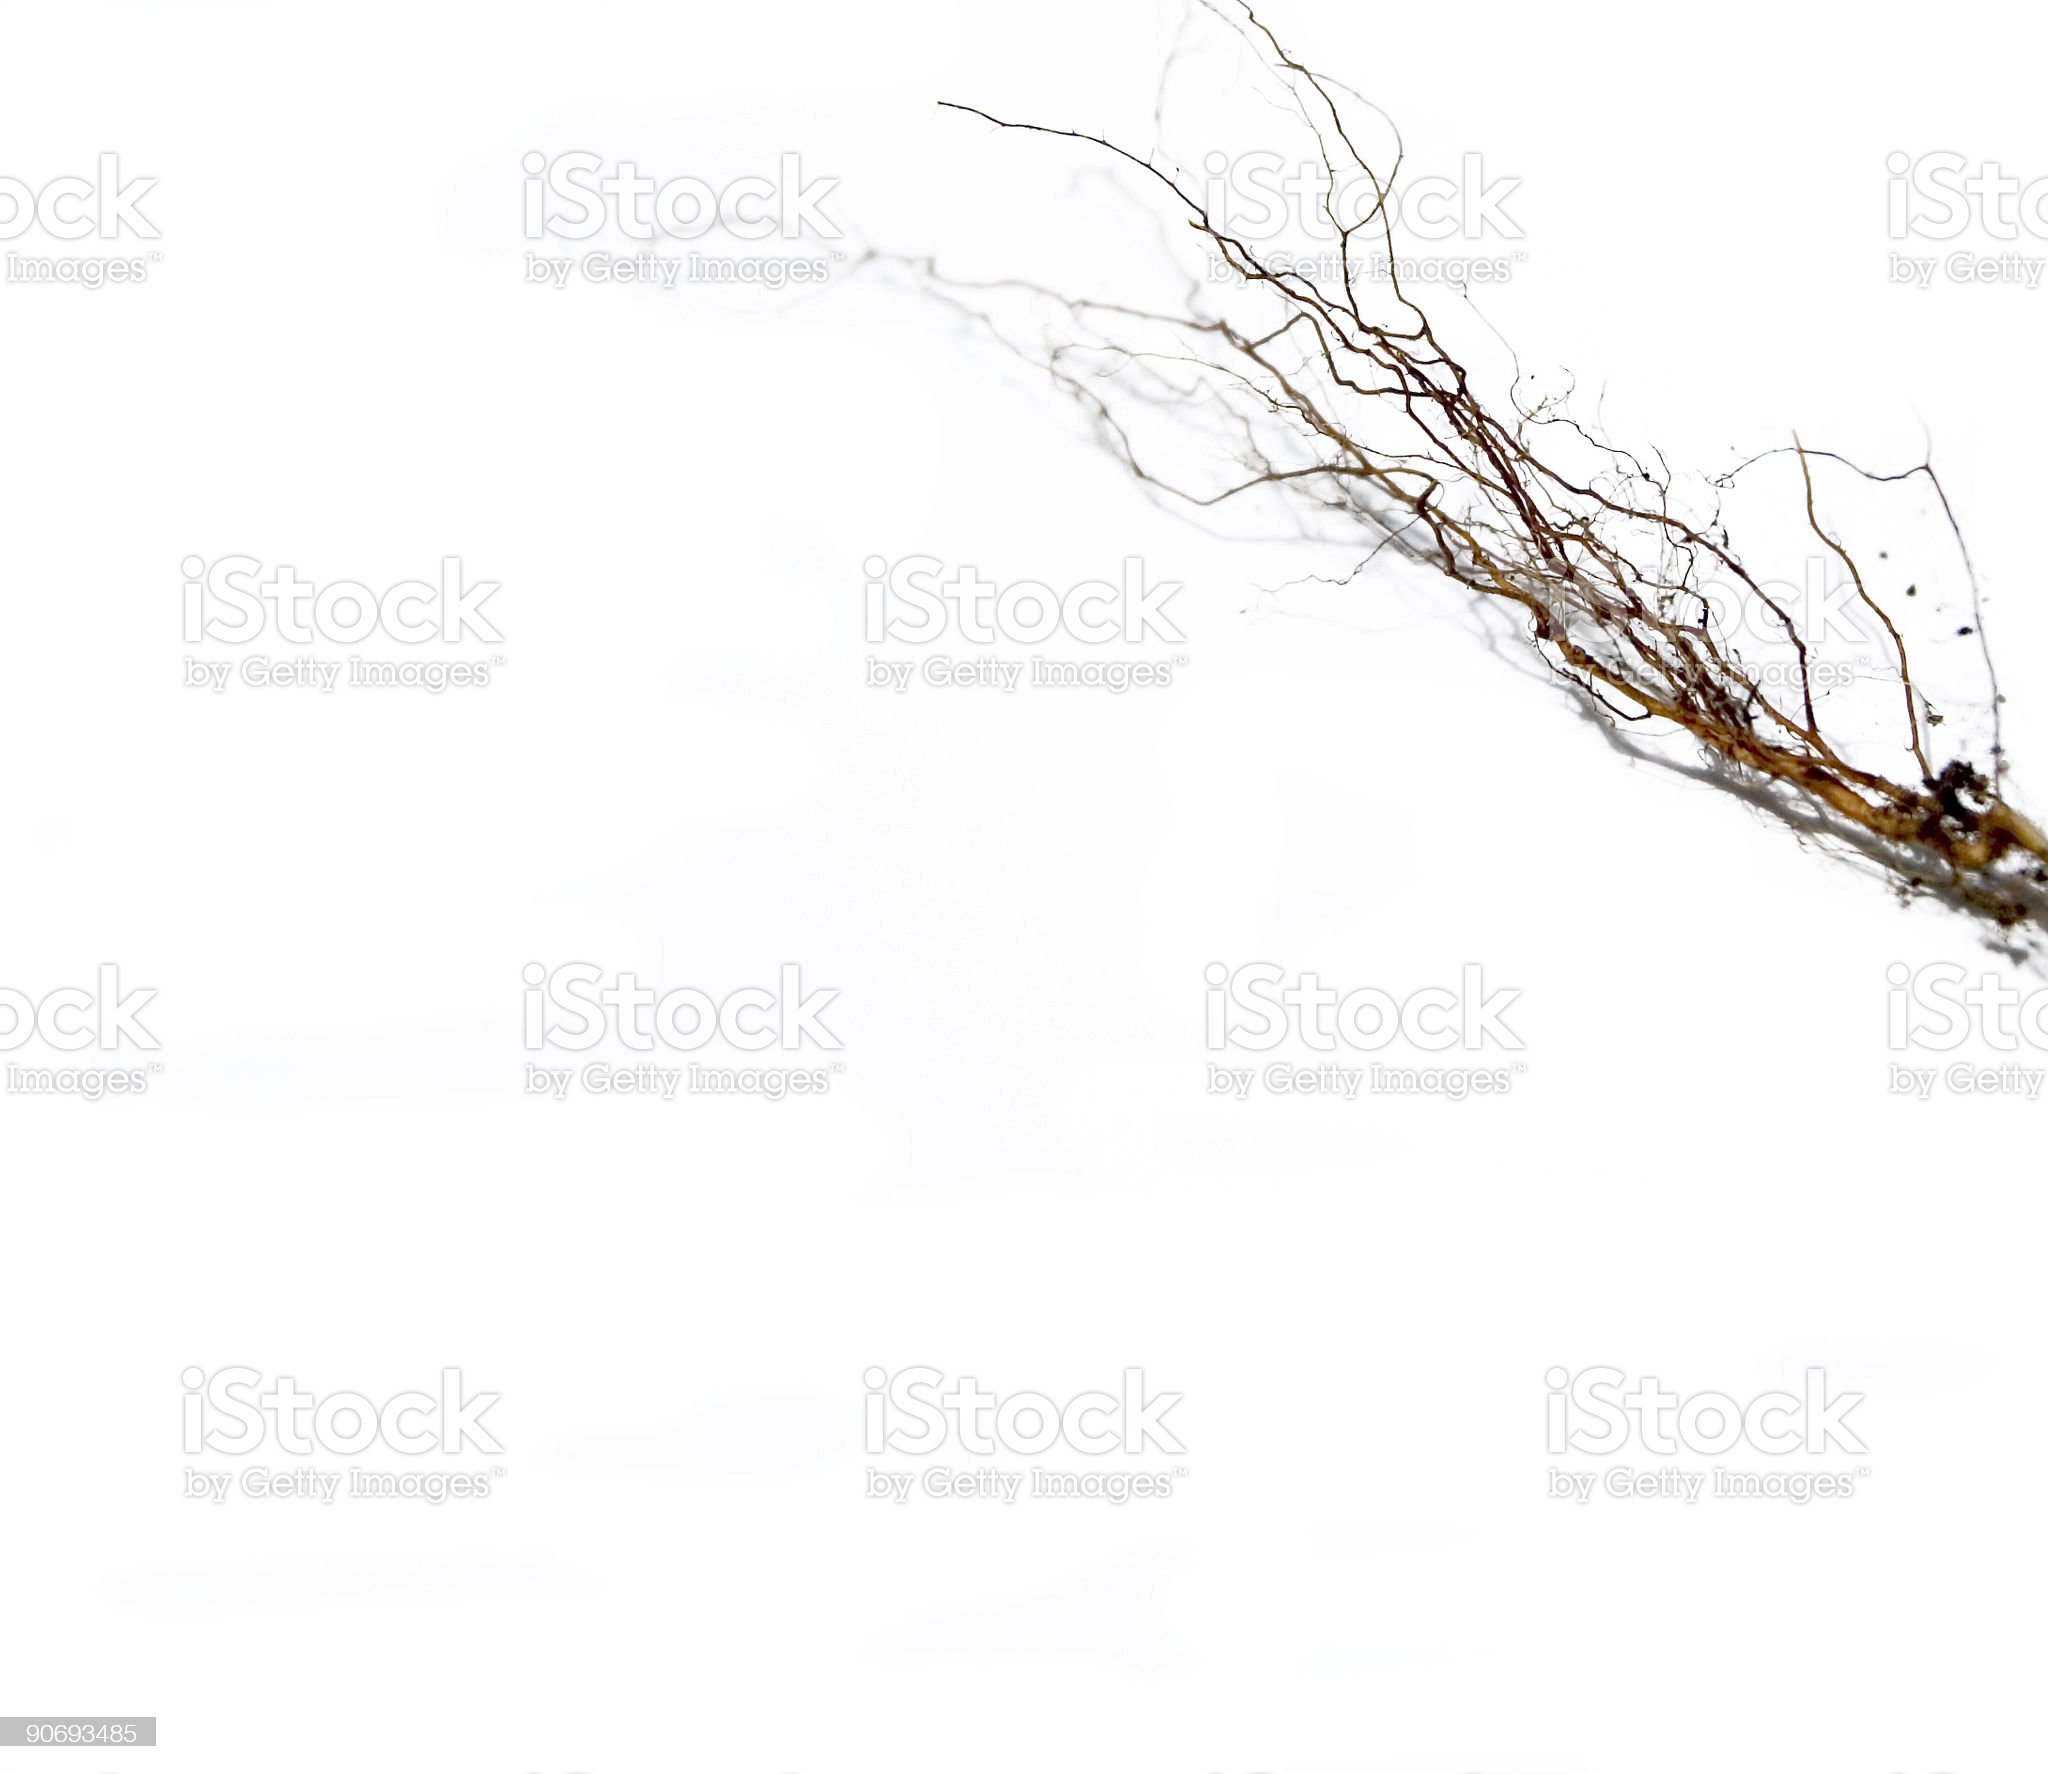 roots: 4 royalty-free stock photo